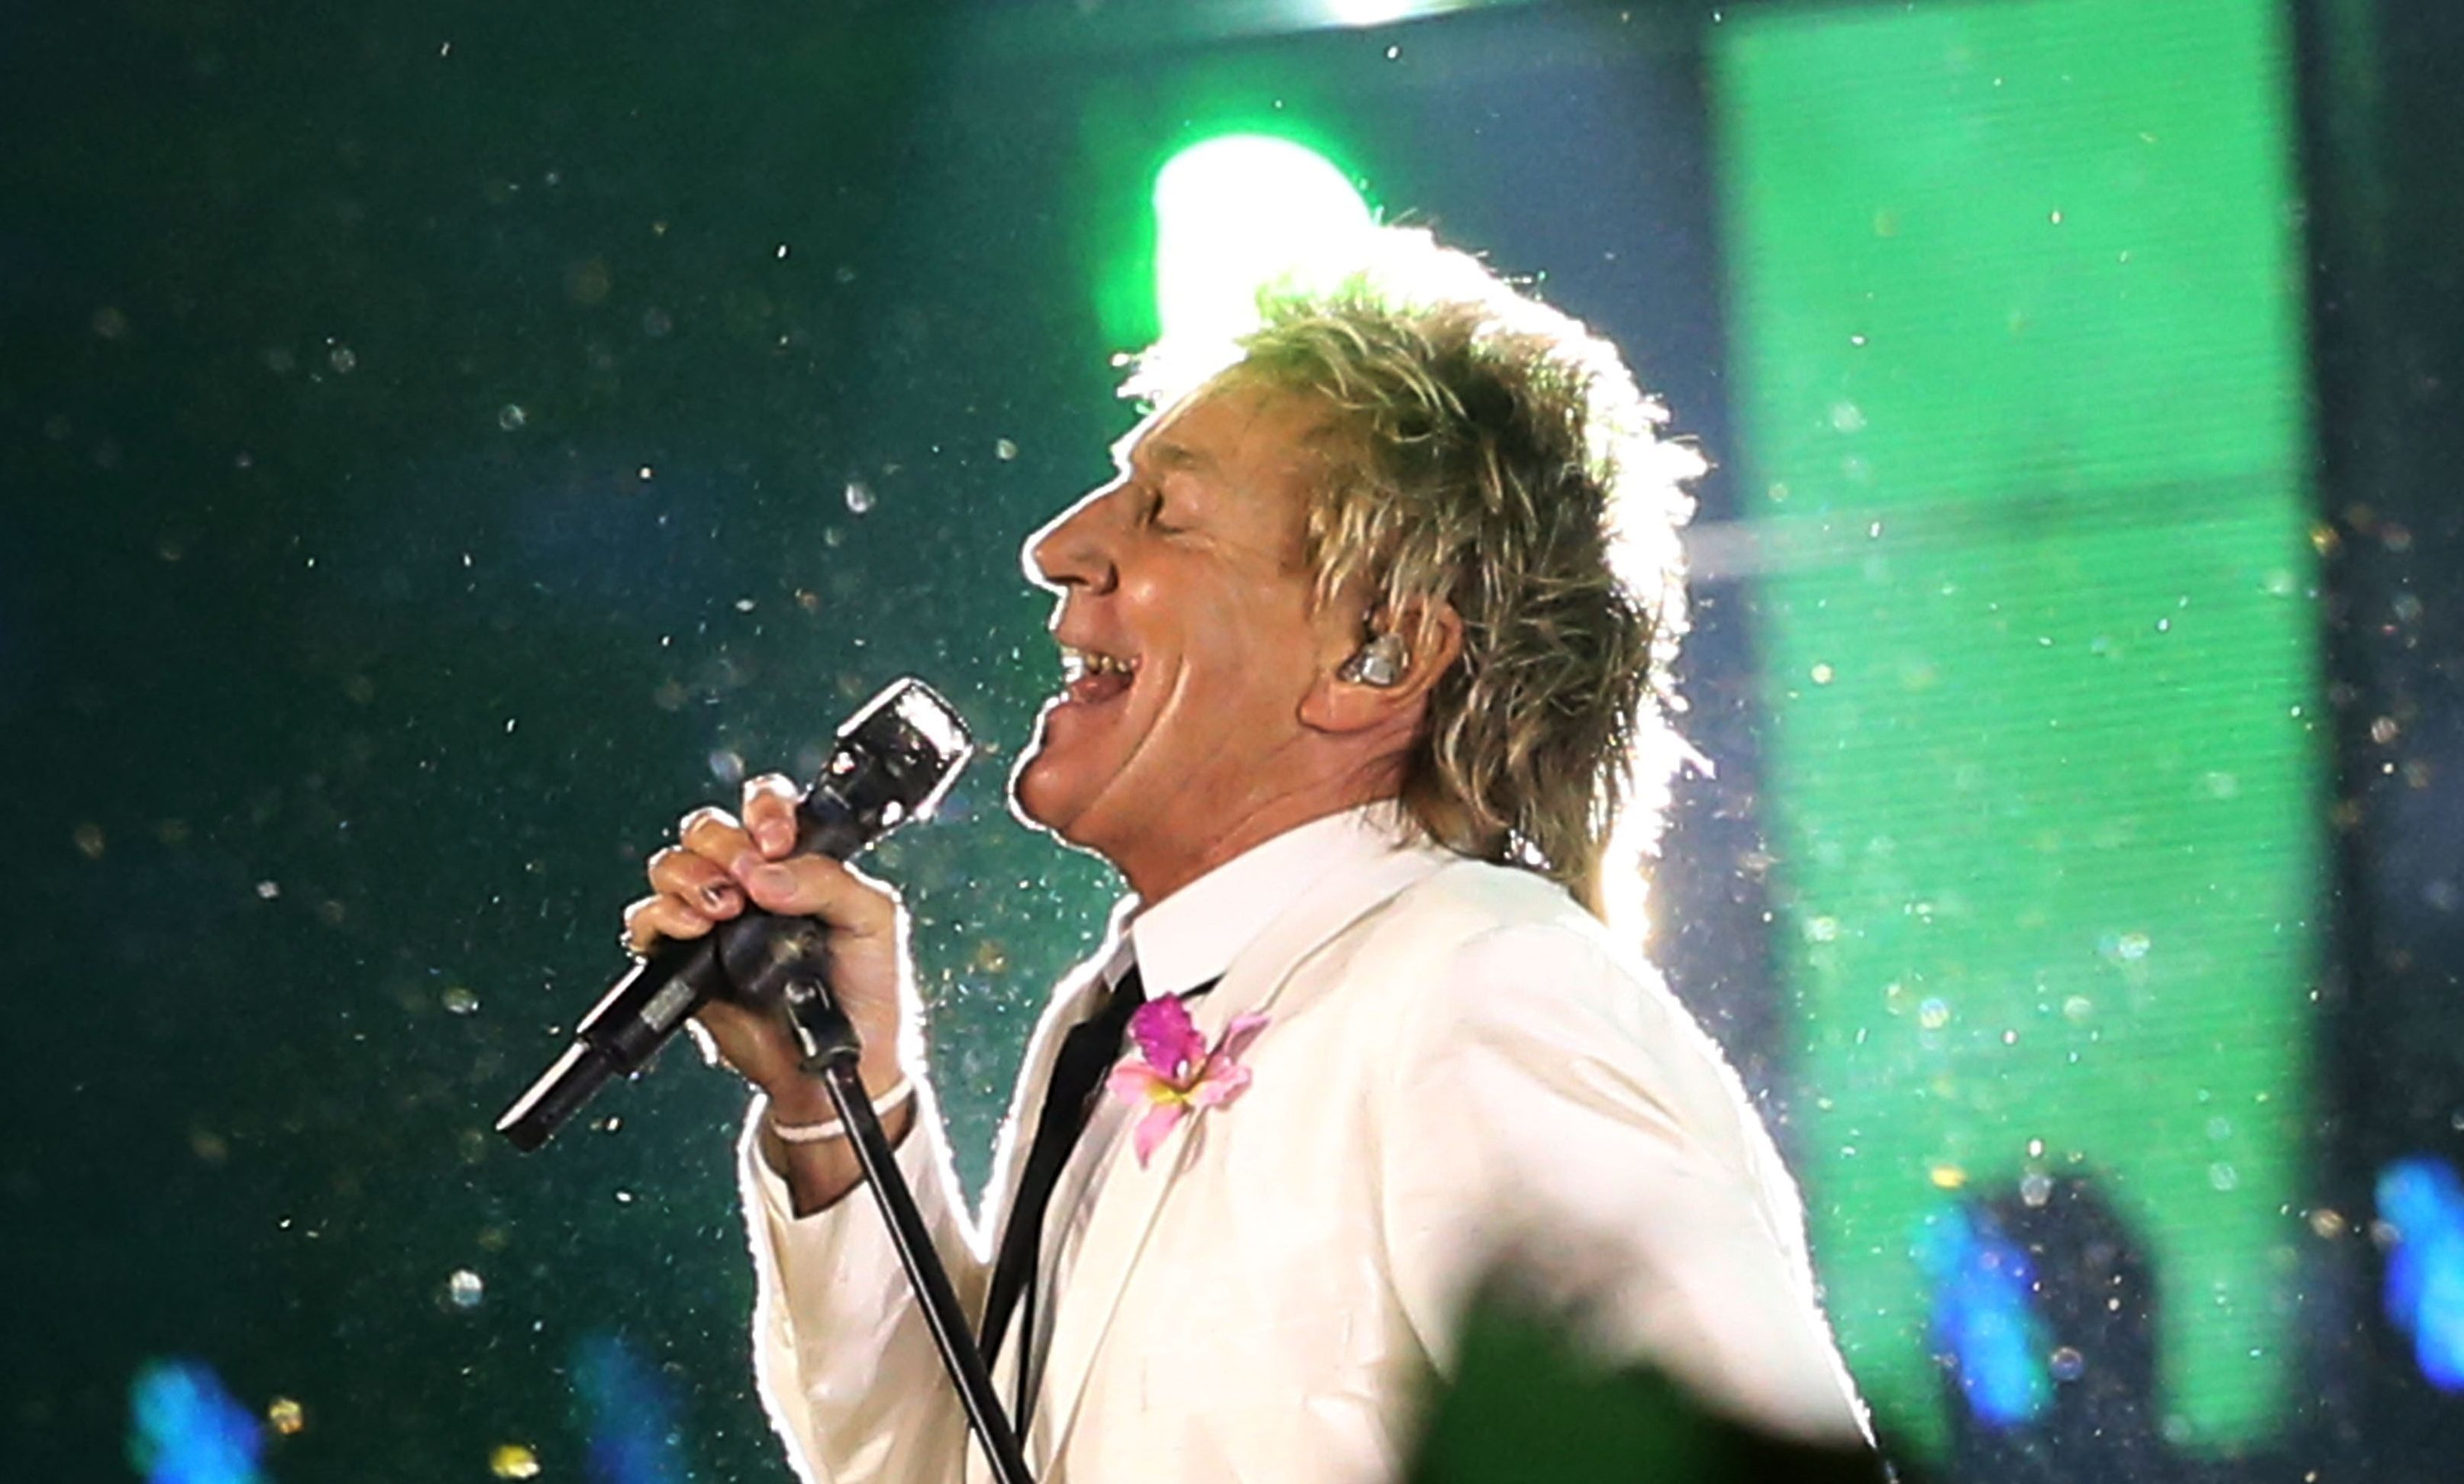 Singer Sir Rod Stewart performs during the Opening Ceremony for the Glasgow 2014 Commonwealth Games.